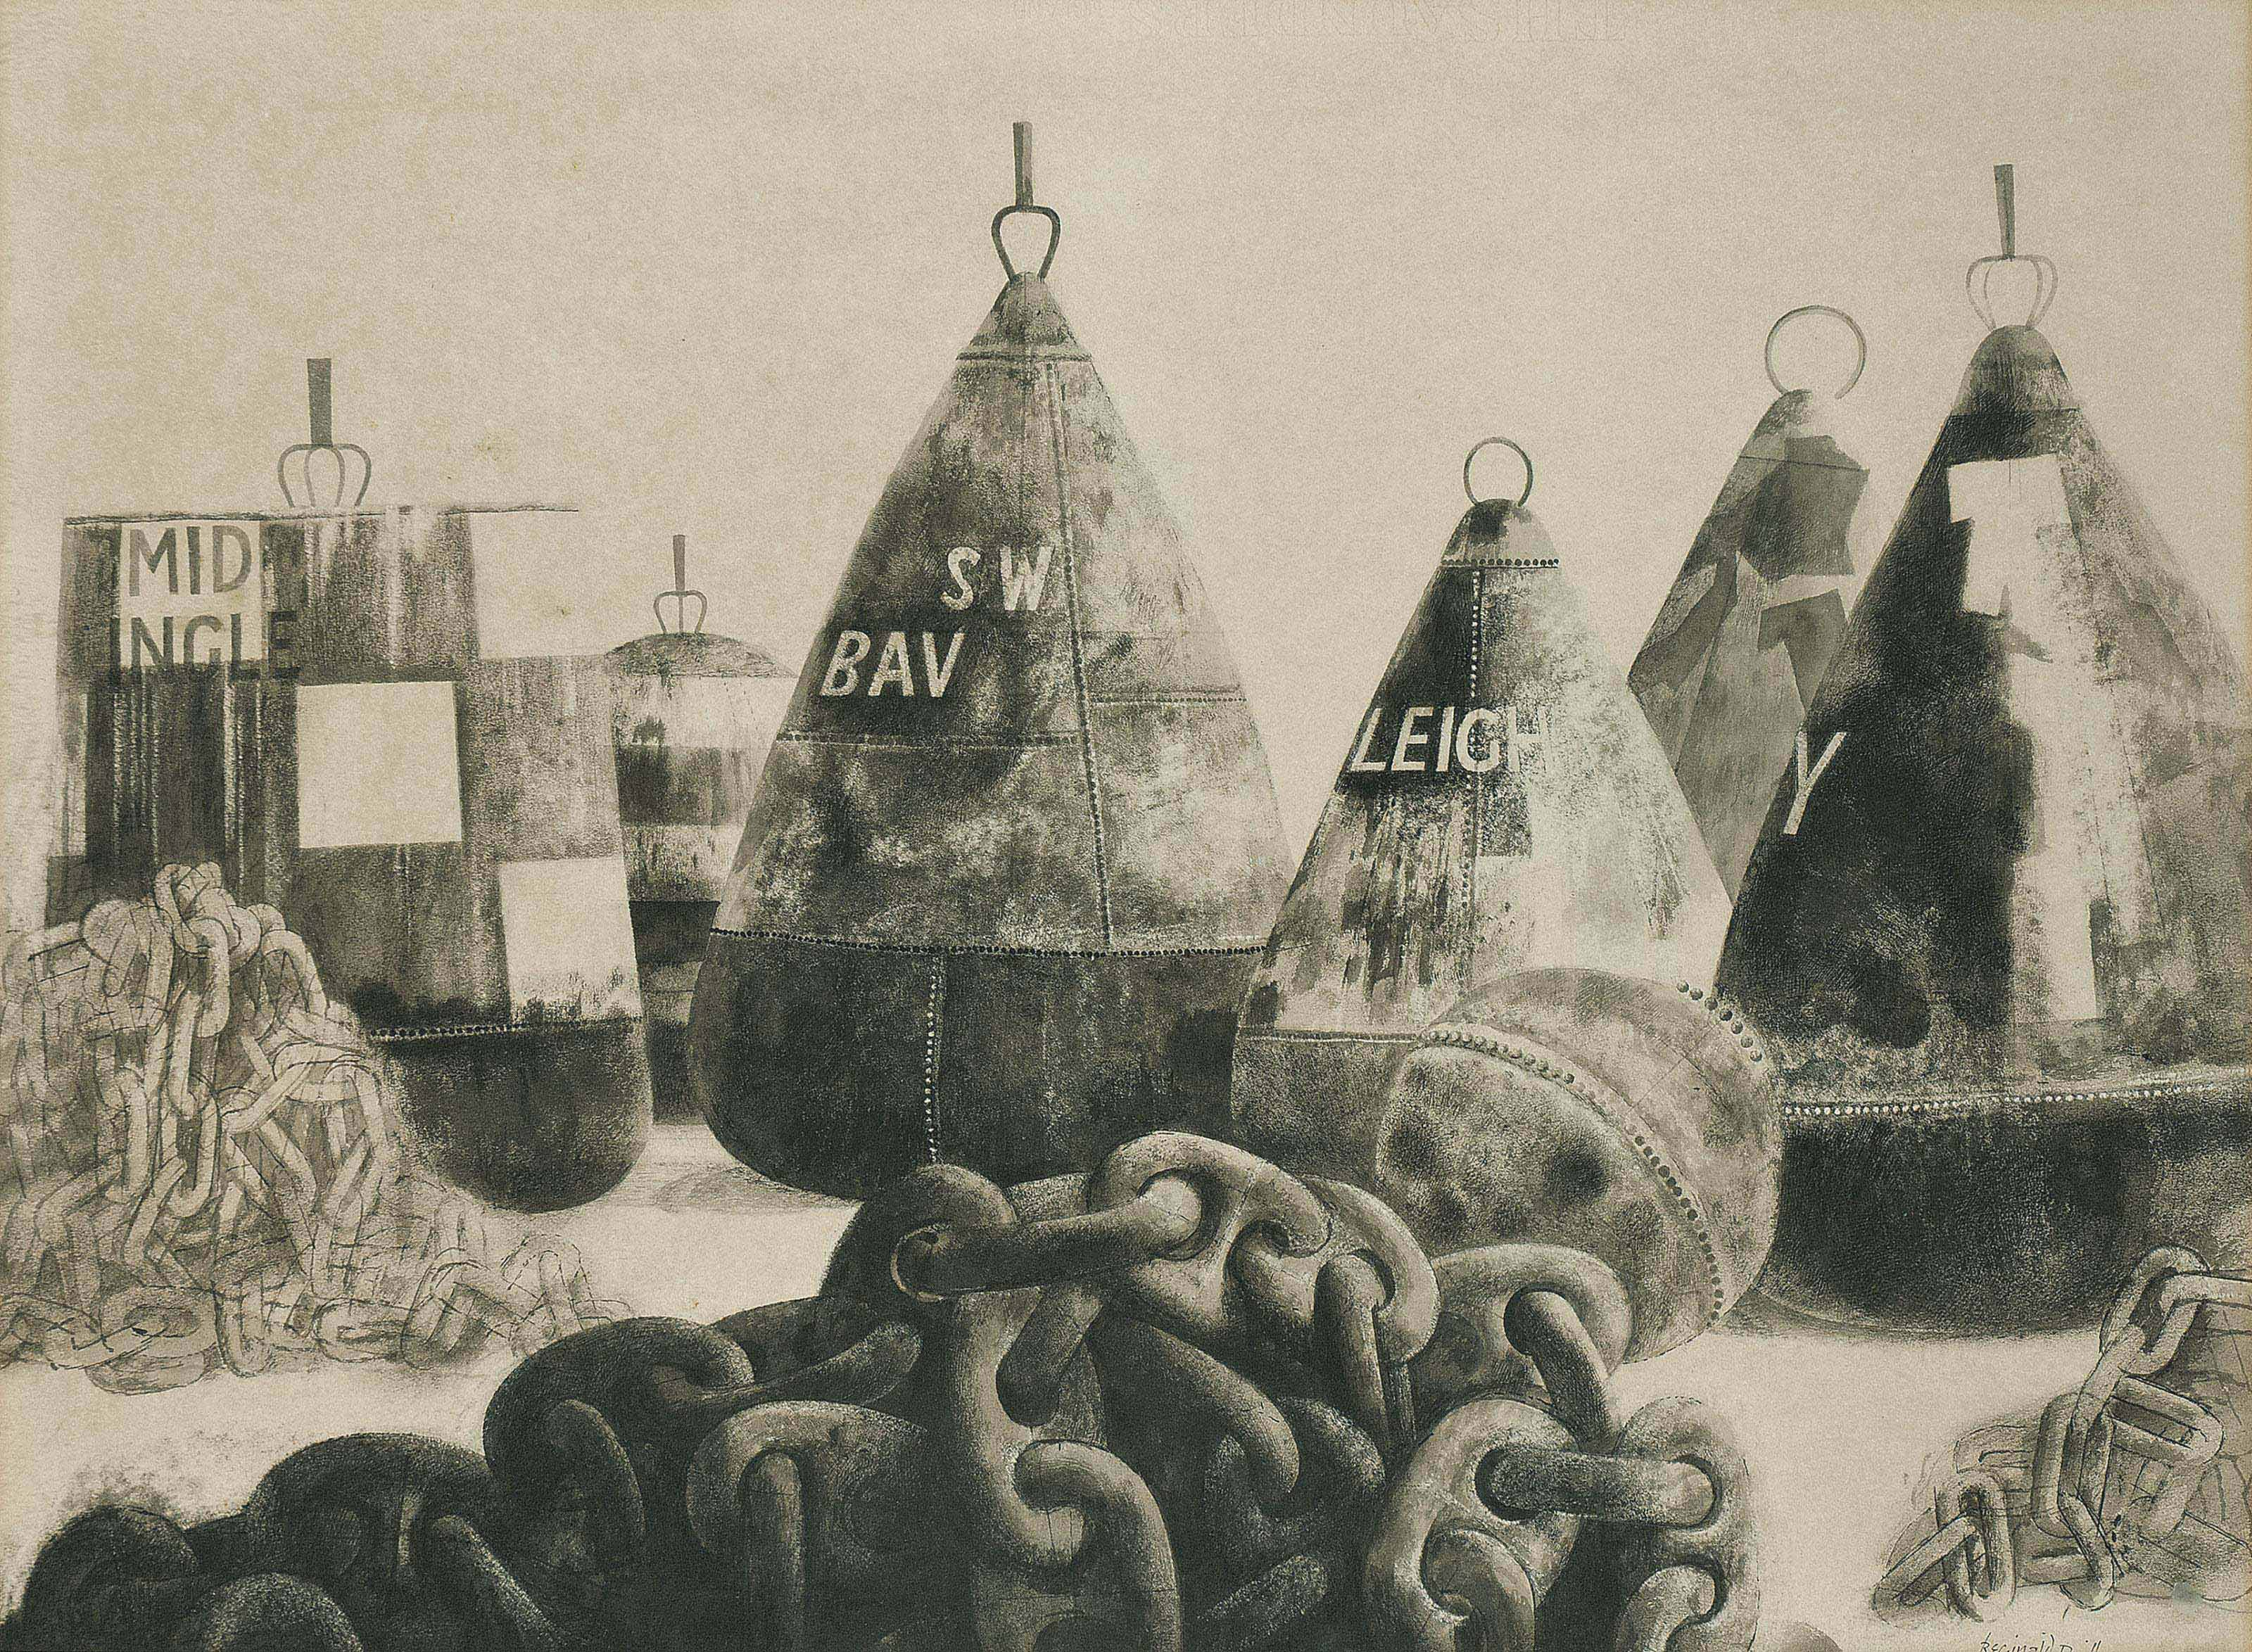 Buoys and Chains, Harwich